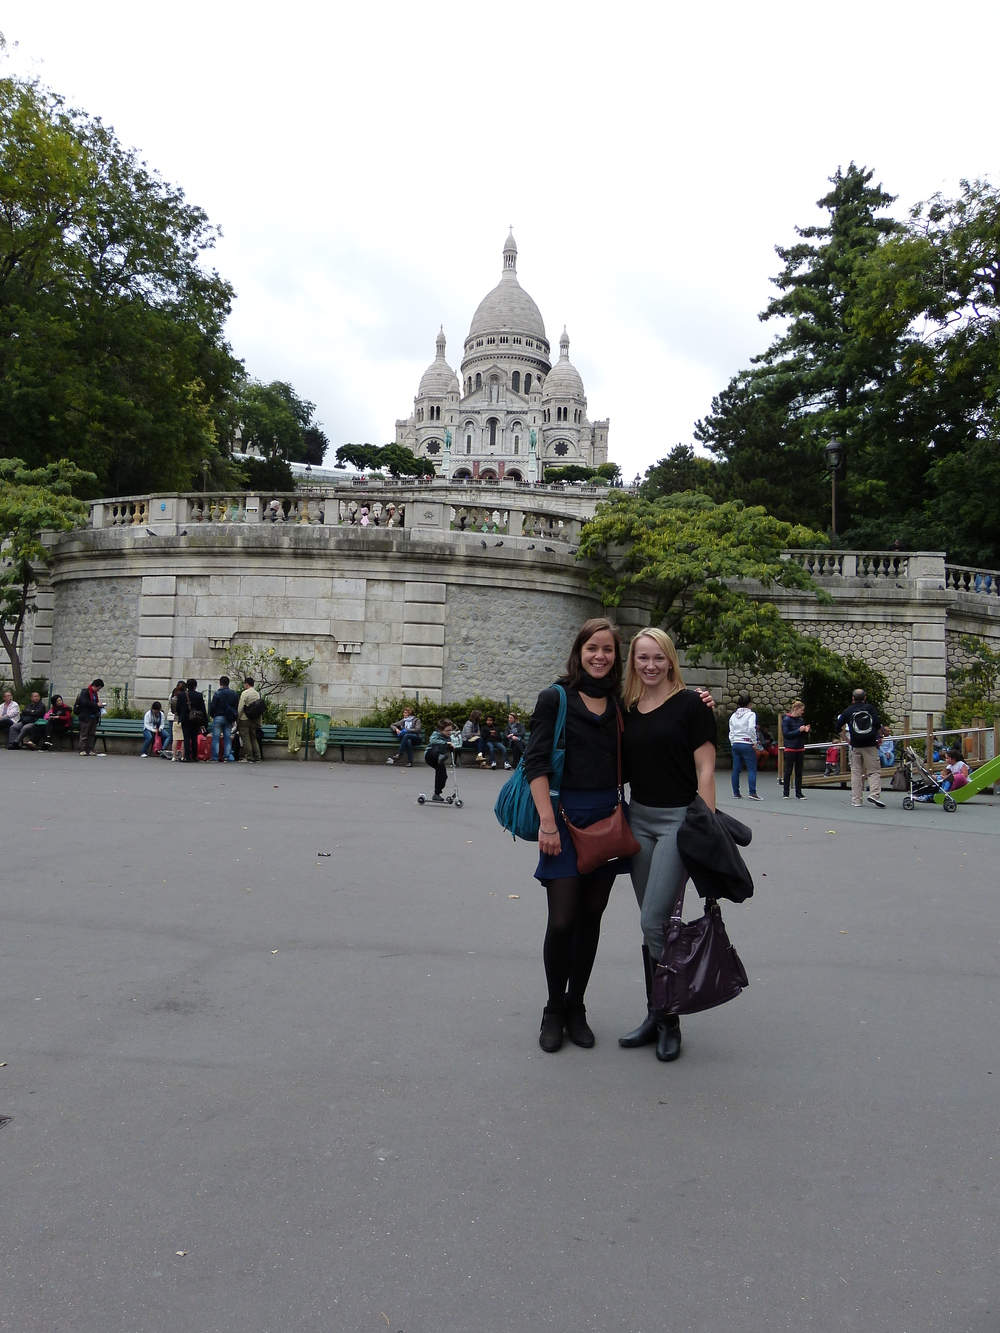 True story: one of my goals was to visit France to see my friend Marion, who was an exchange student at my high school. It took me 15 years, but we spent my 31st birthday walking miles around Paris and catching up. In English, because I don't speak French.